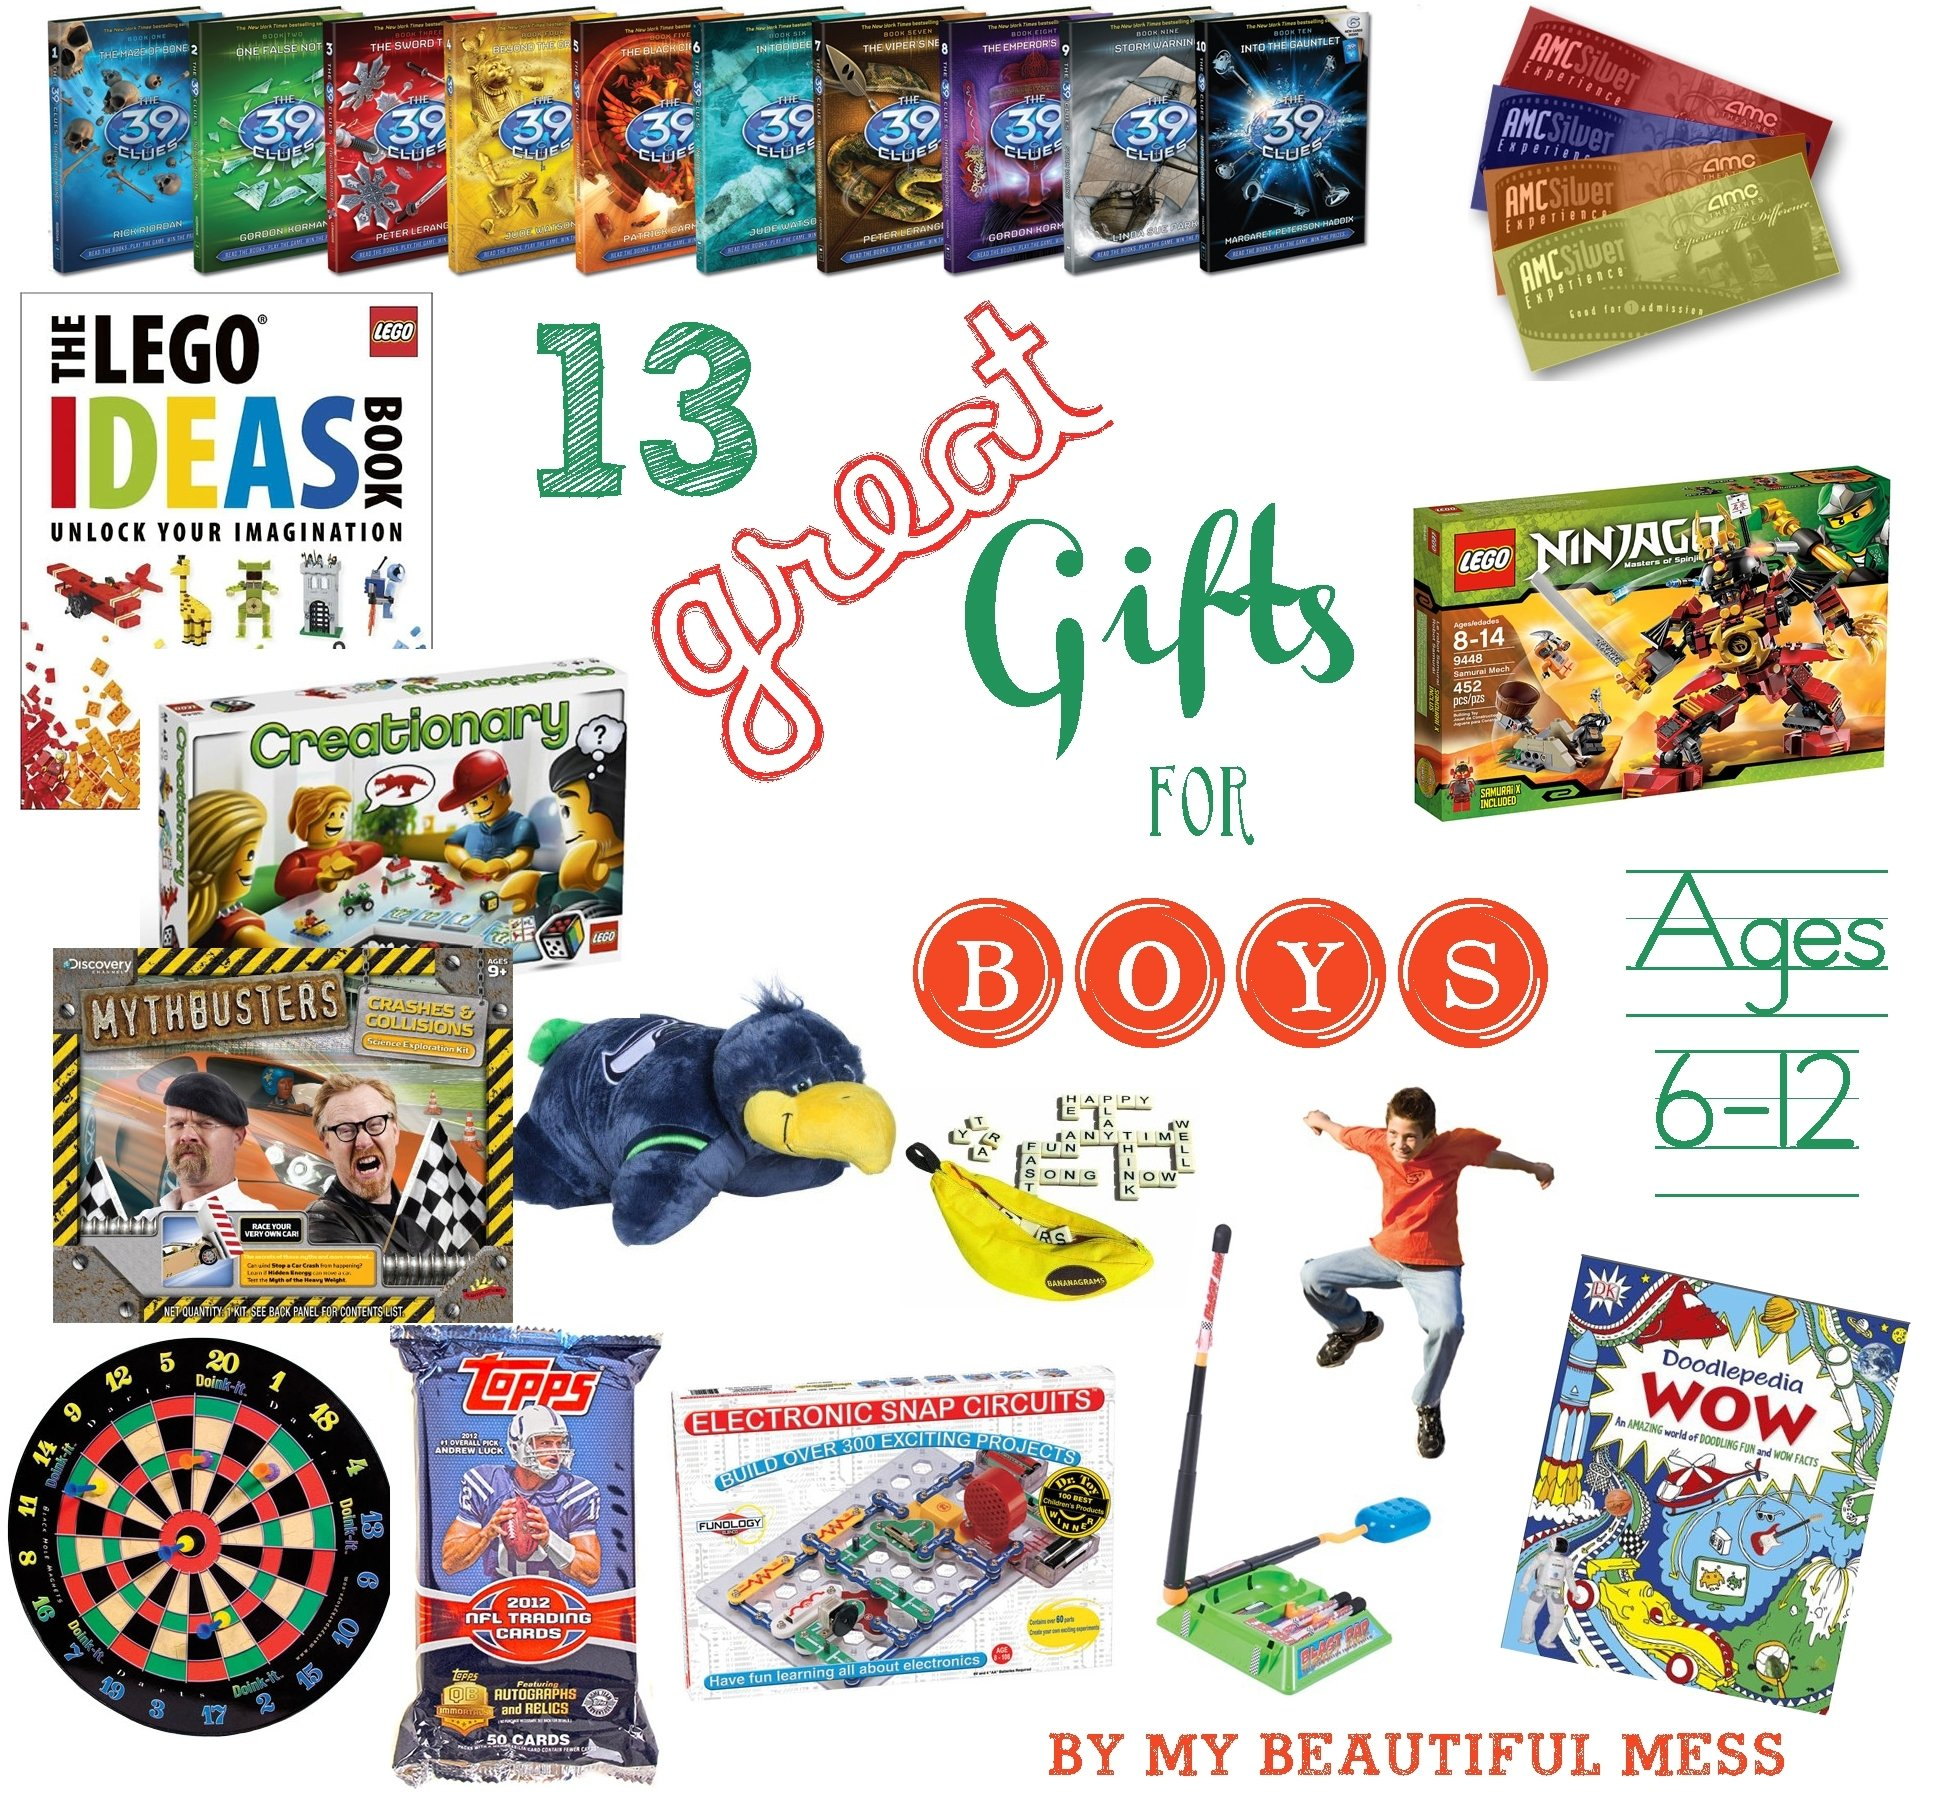 10 Most Popular Gift Ideas For A 6 Year Old Boy 13 great gift ideas for grade school aged boys ages 6 12 4 2020